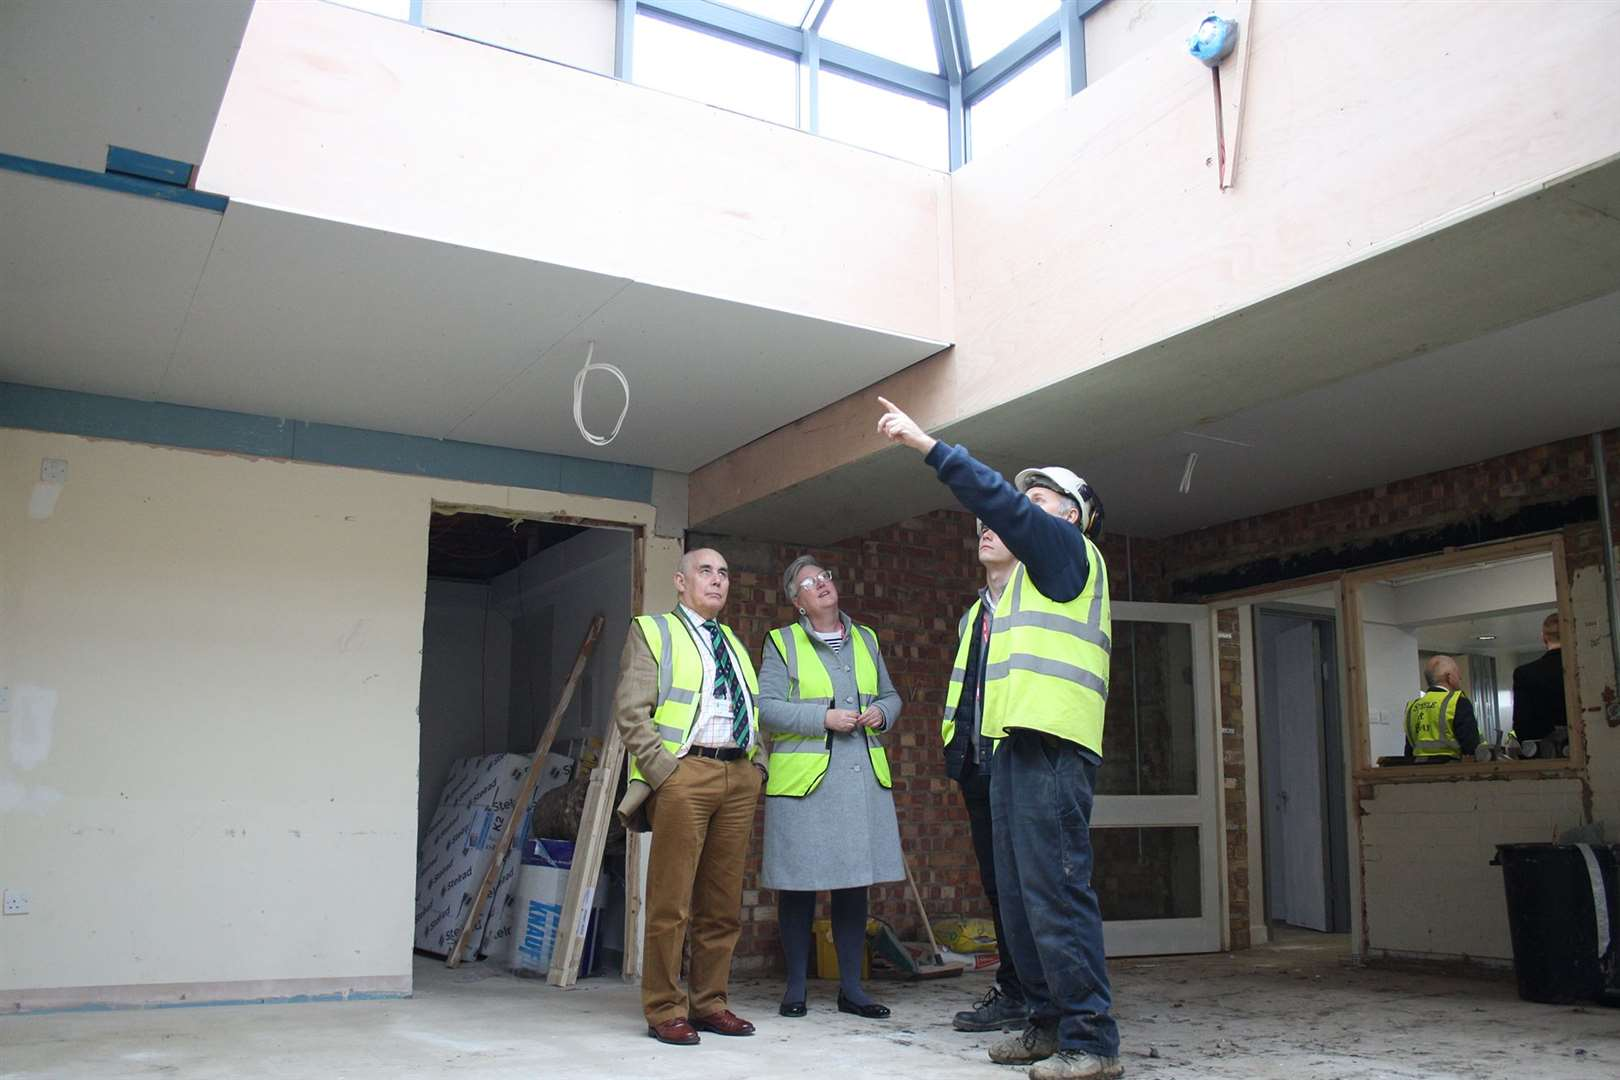 Councillor David Wilby, Rutland County Council, Cabinet Member for Education at Rutland County Council, reviews the newly installed roof light at the new SEND provision at Uppingham Community College